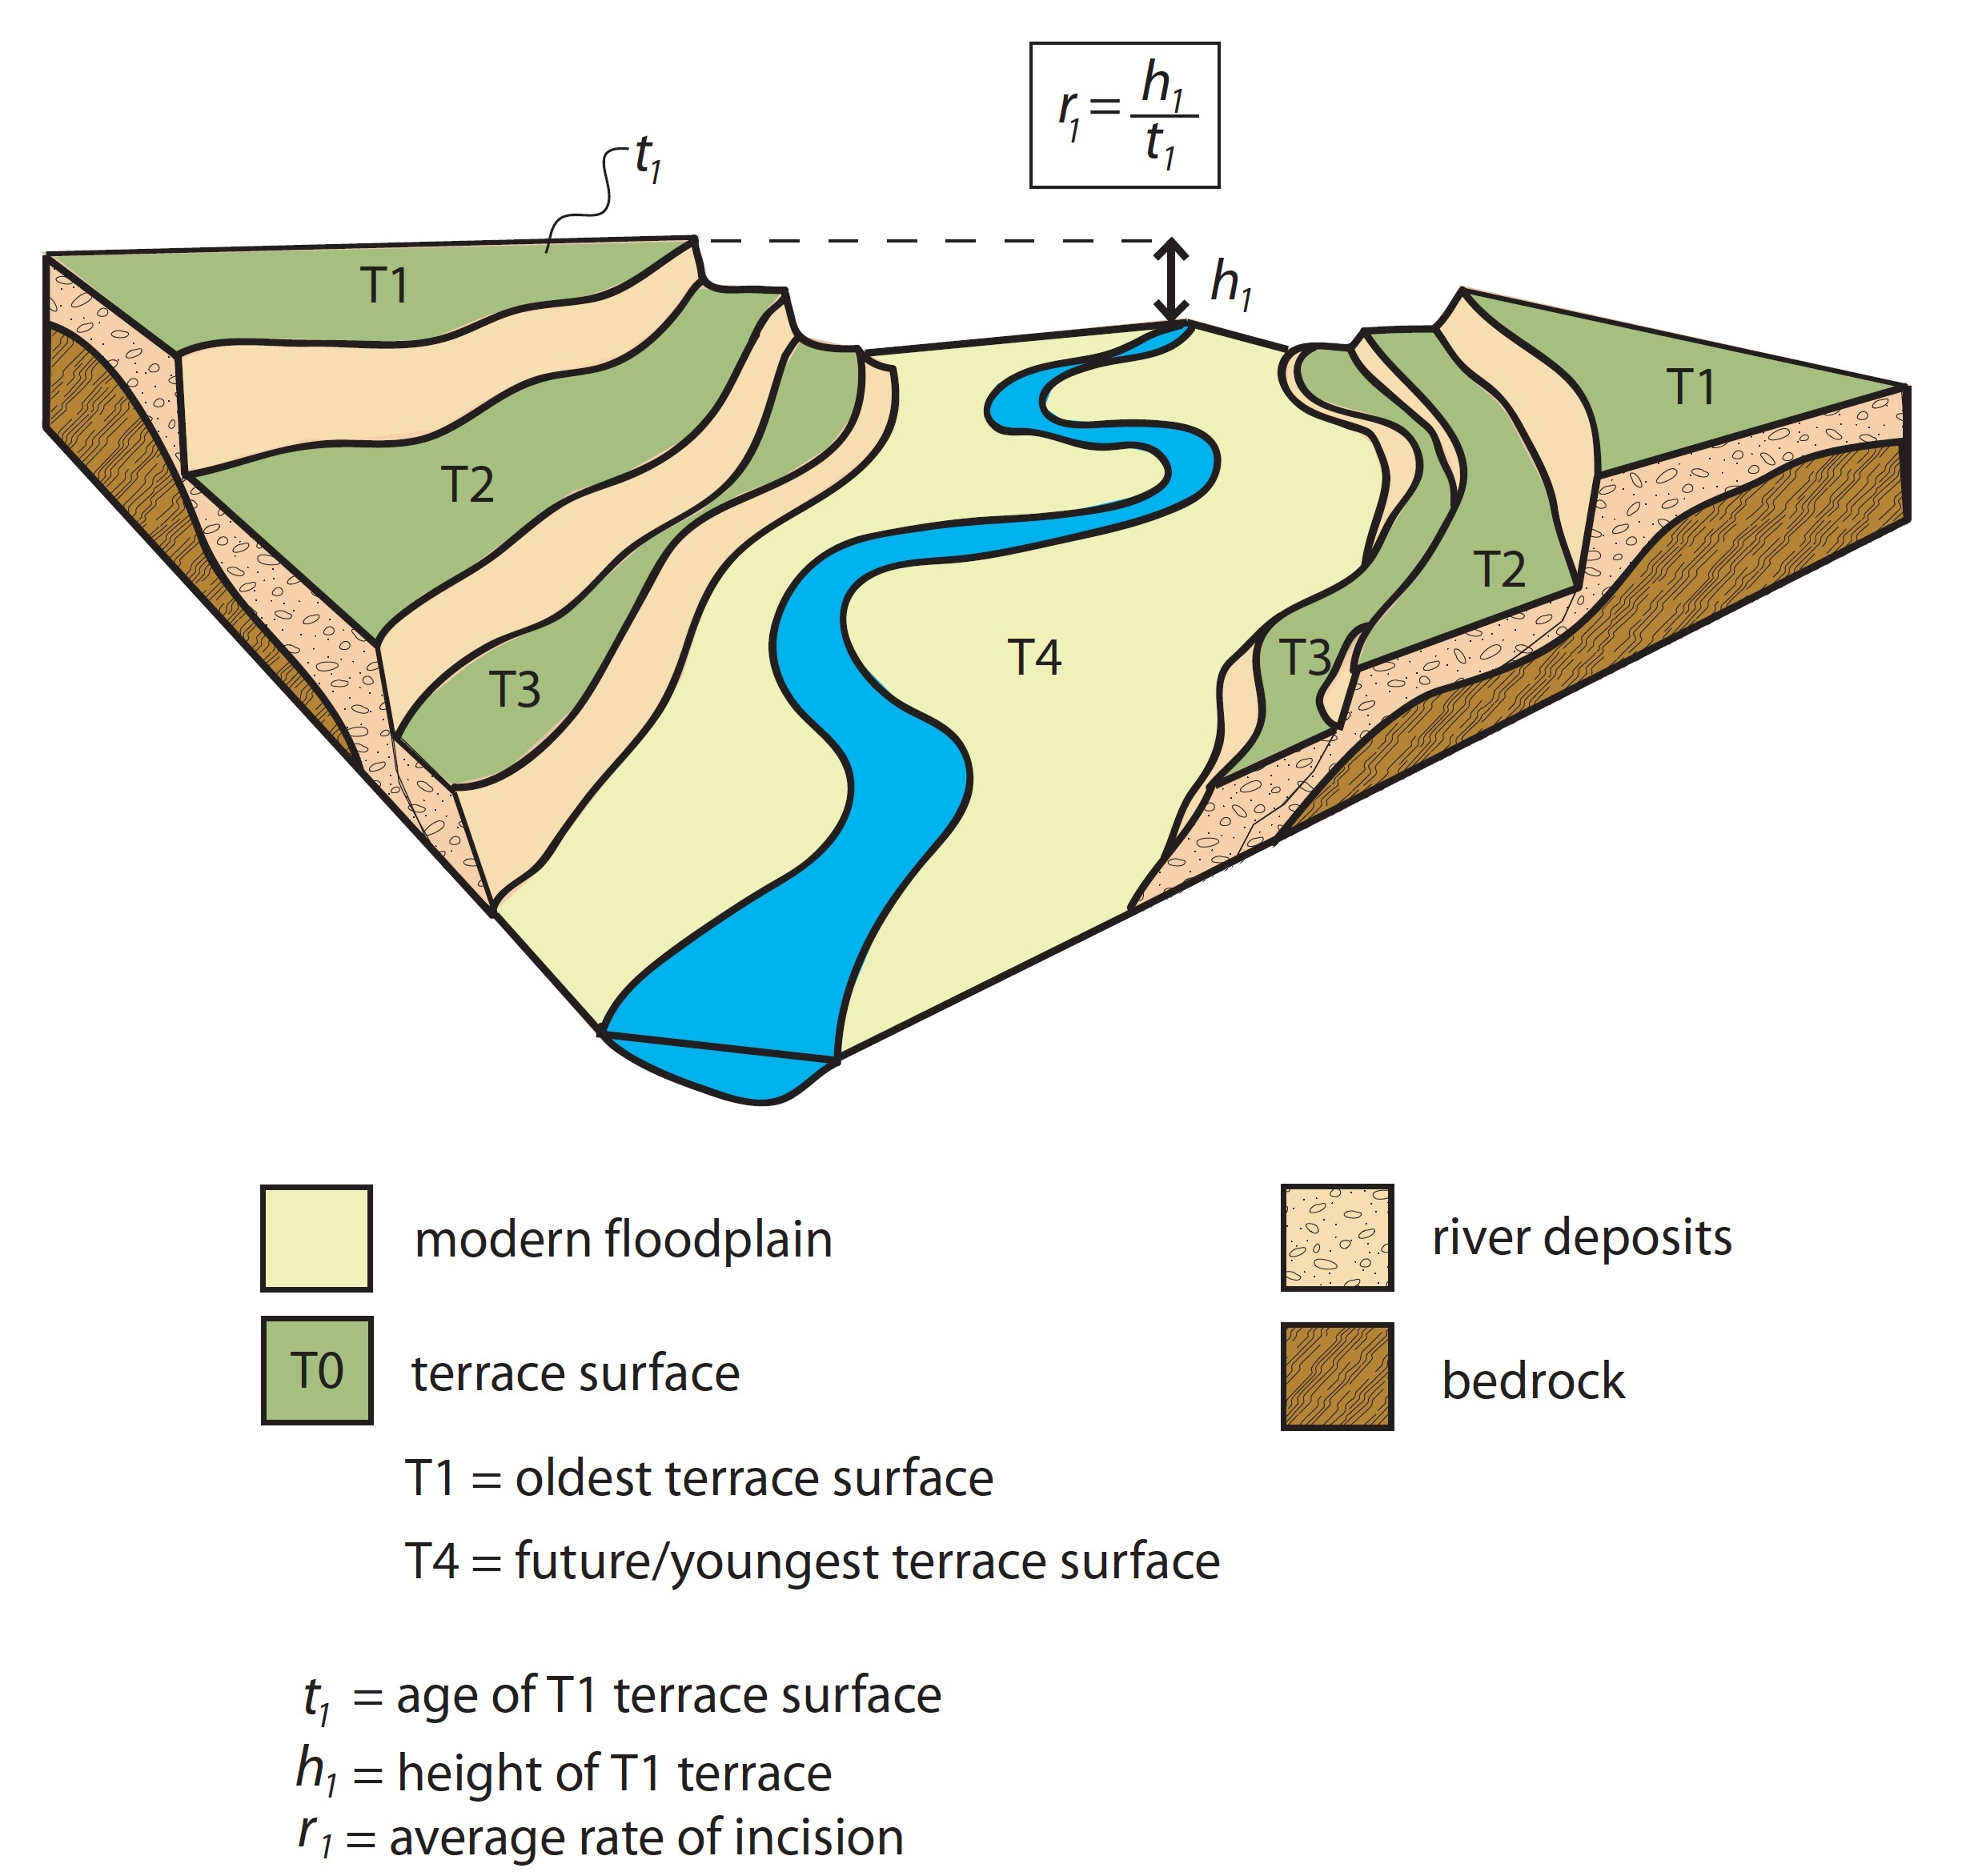 Watershed Tributary Diagram File:A series of paire...